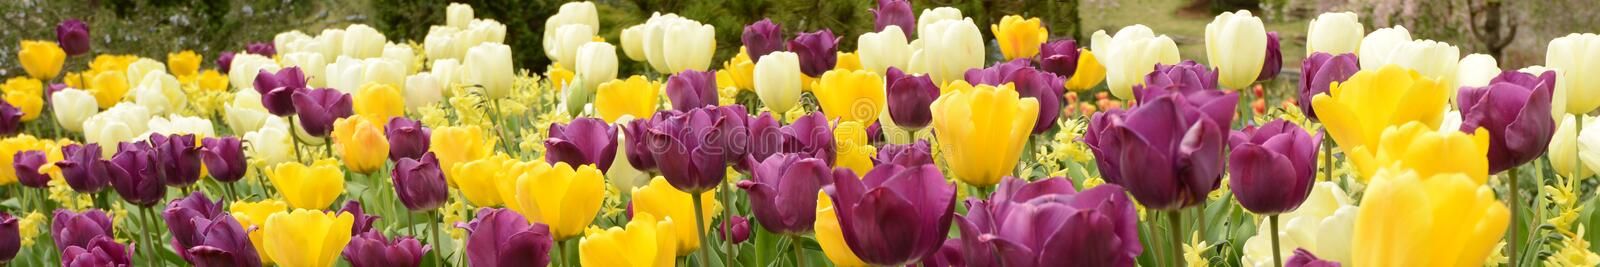 Beautiful Tulips in the Spring royalty free stock images